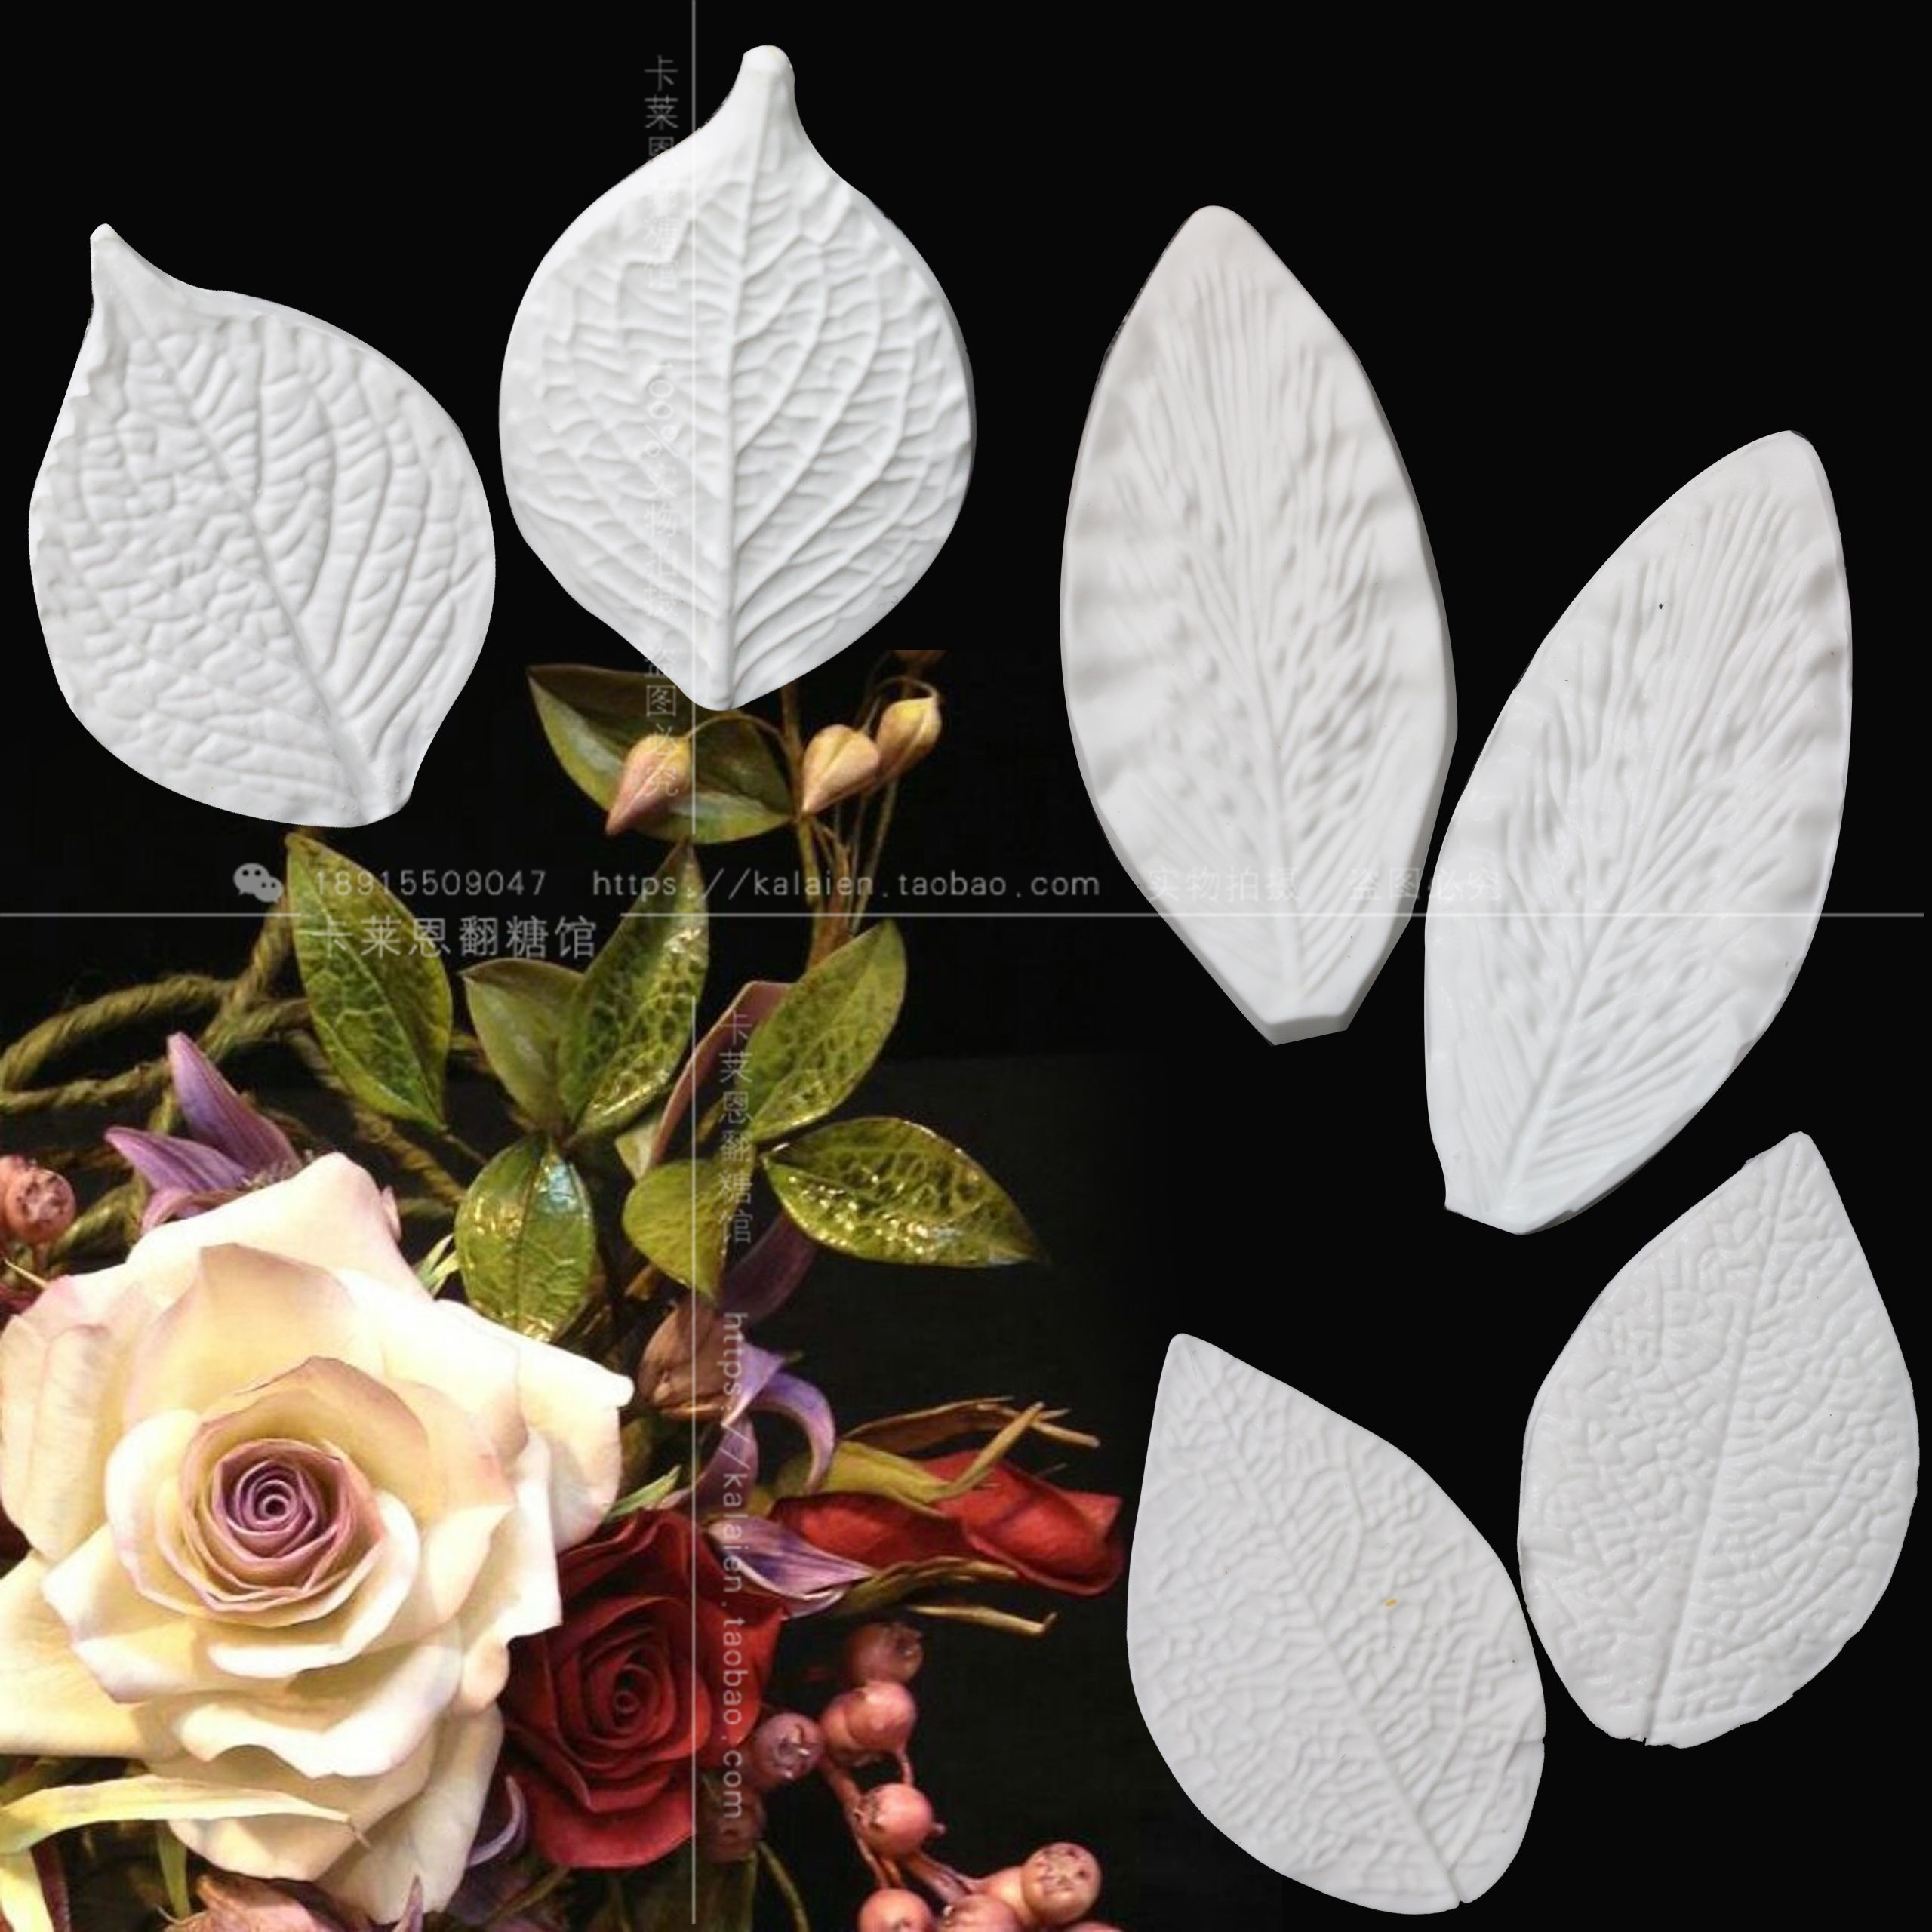 Diy sugar flower mould clay artificial flower moscire masklike diy sugar flower mould clay artificial flower moscire masklike silicone leave cake mold izmirmasajfo